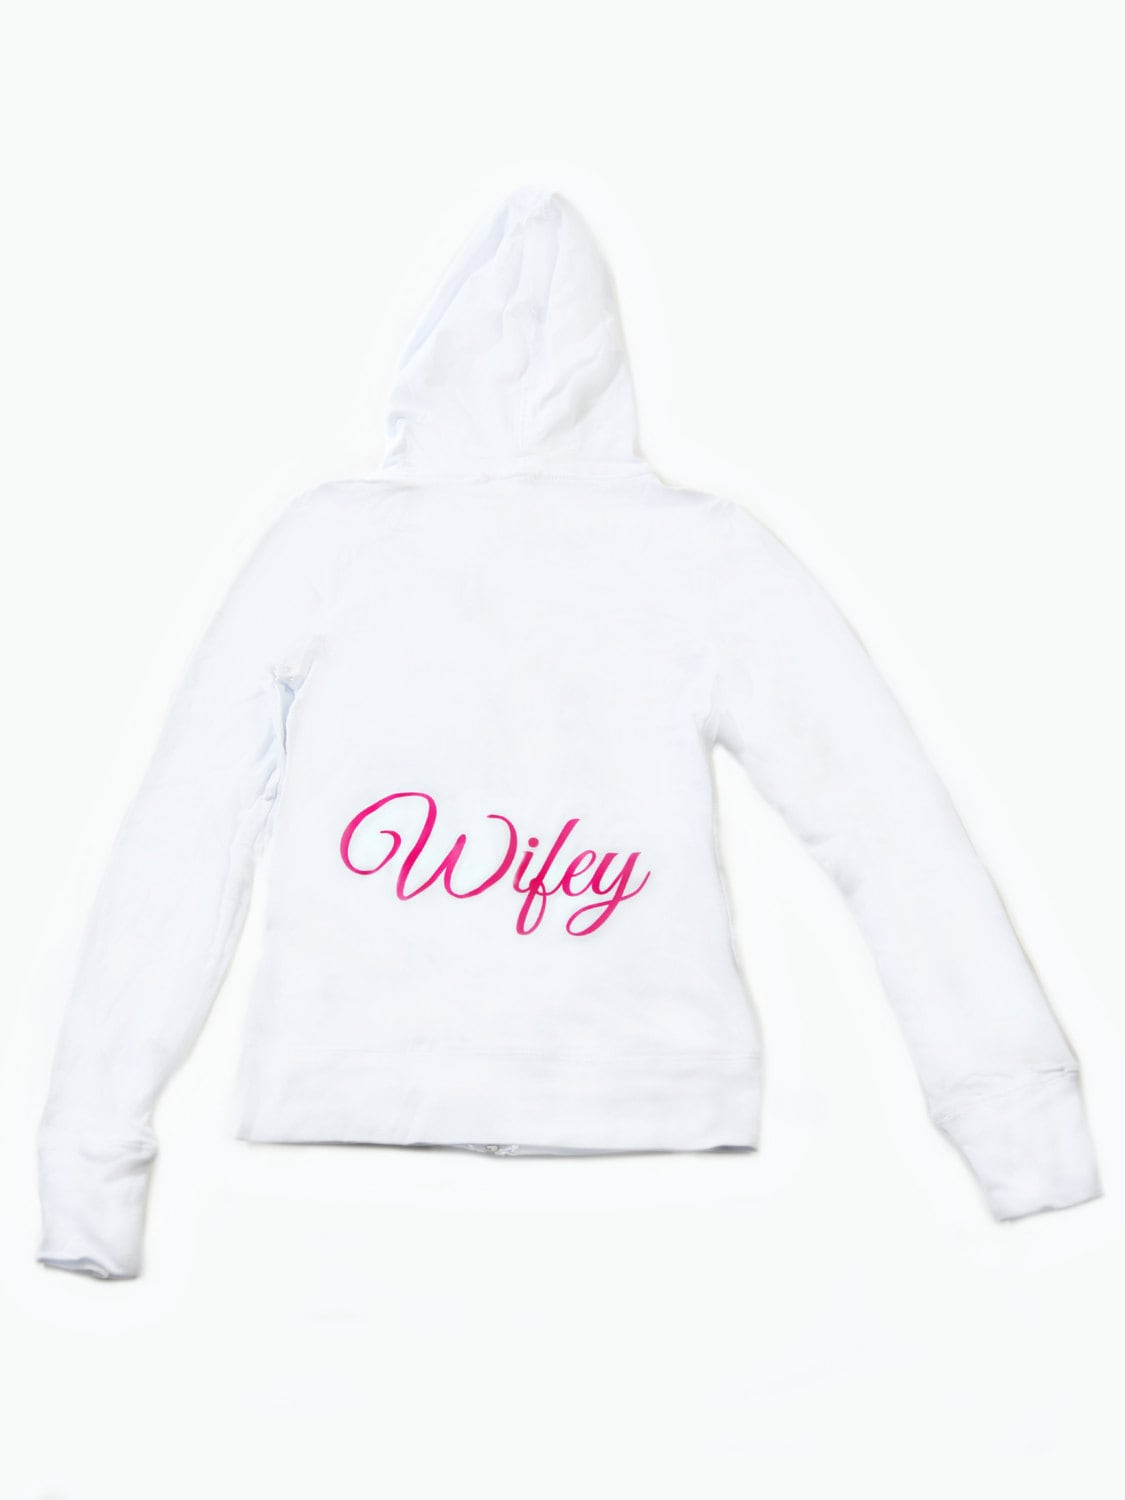 overstock small bride hoodie wifey hoodie bridal shower gift wedding apparel bride zip up hoodie bride fitted sweatshirt